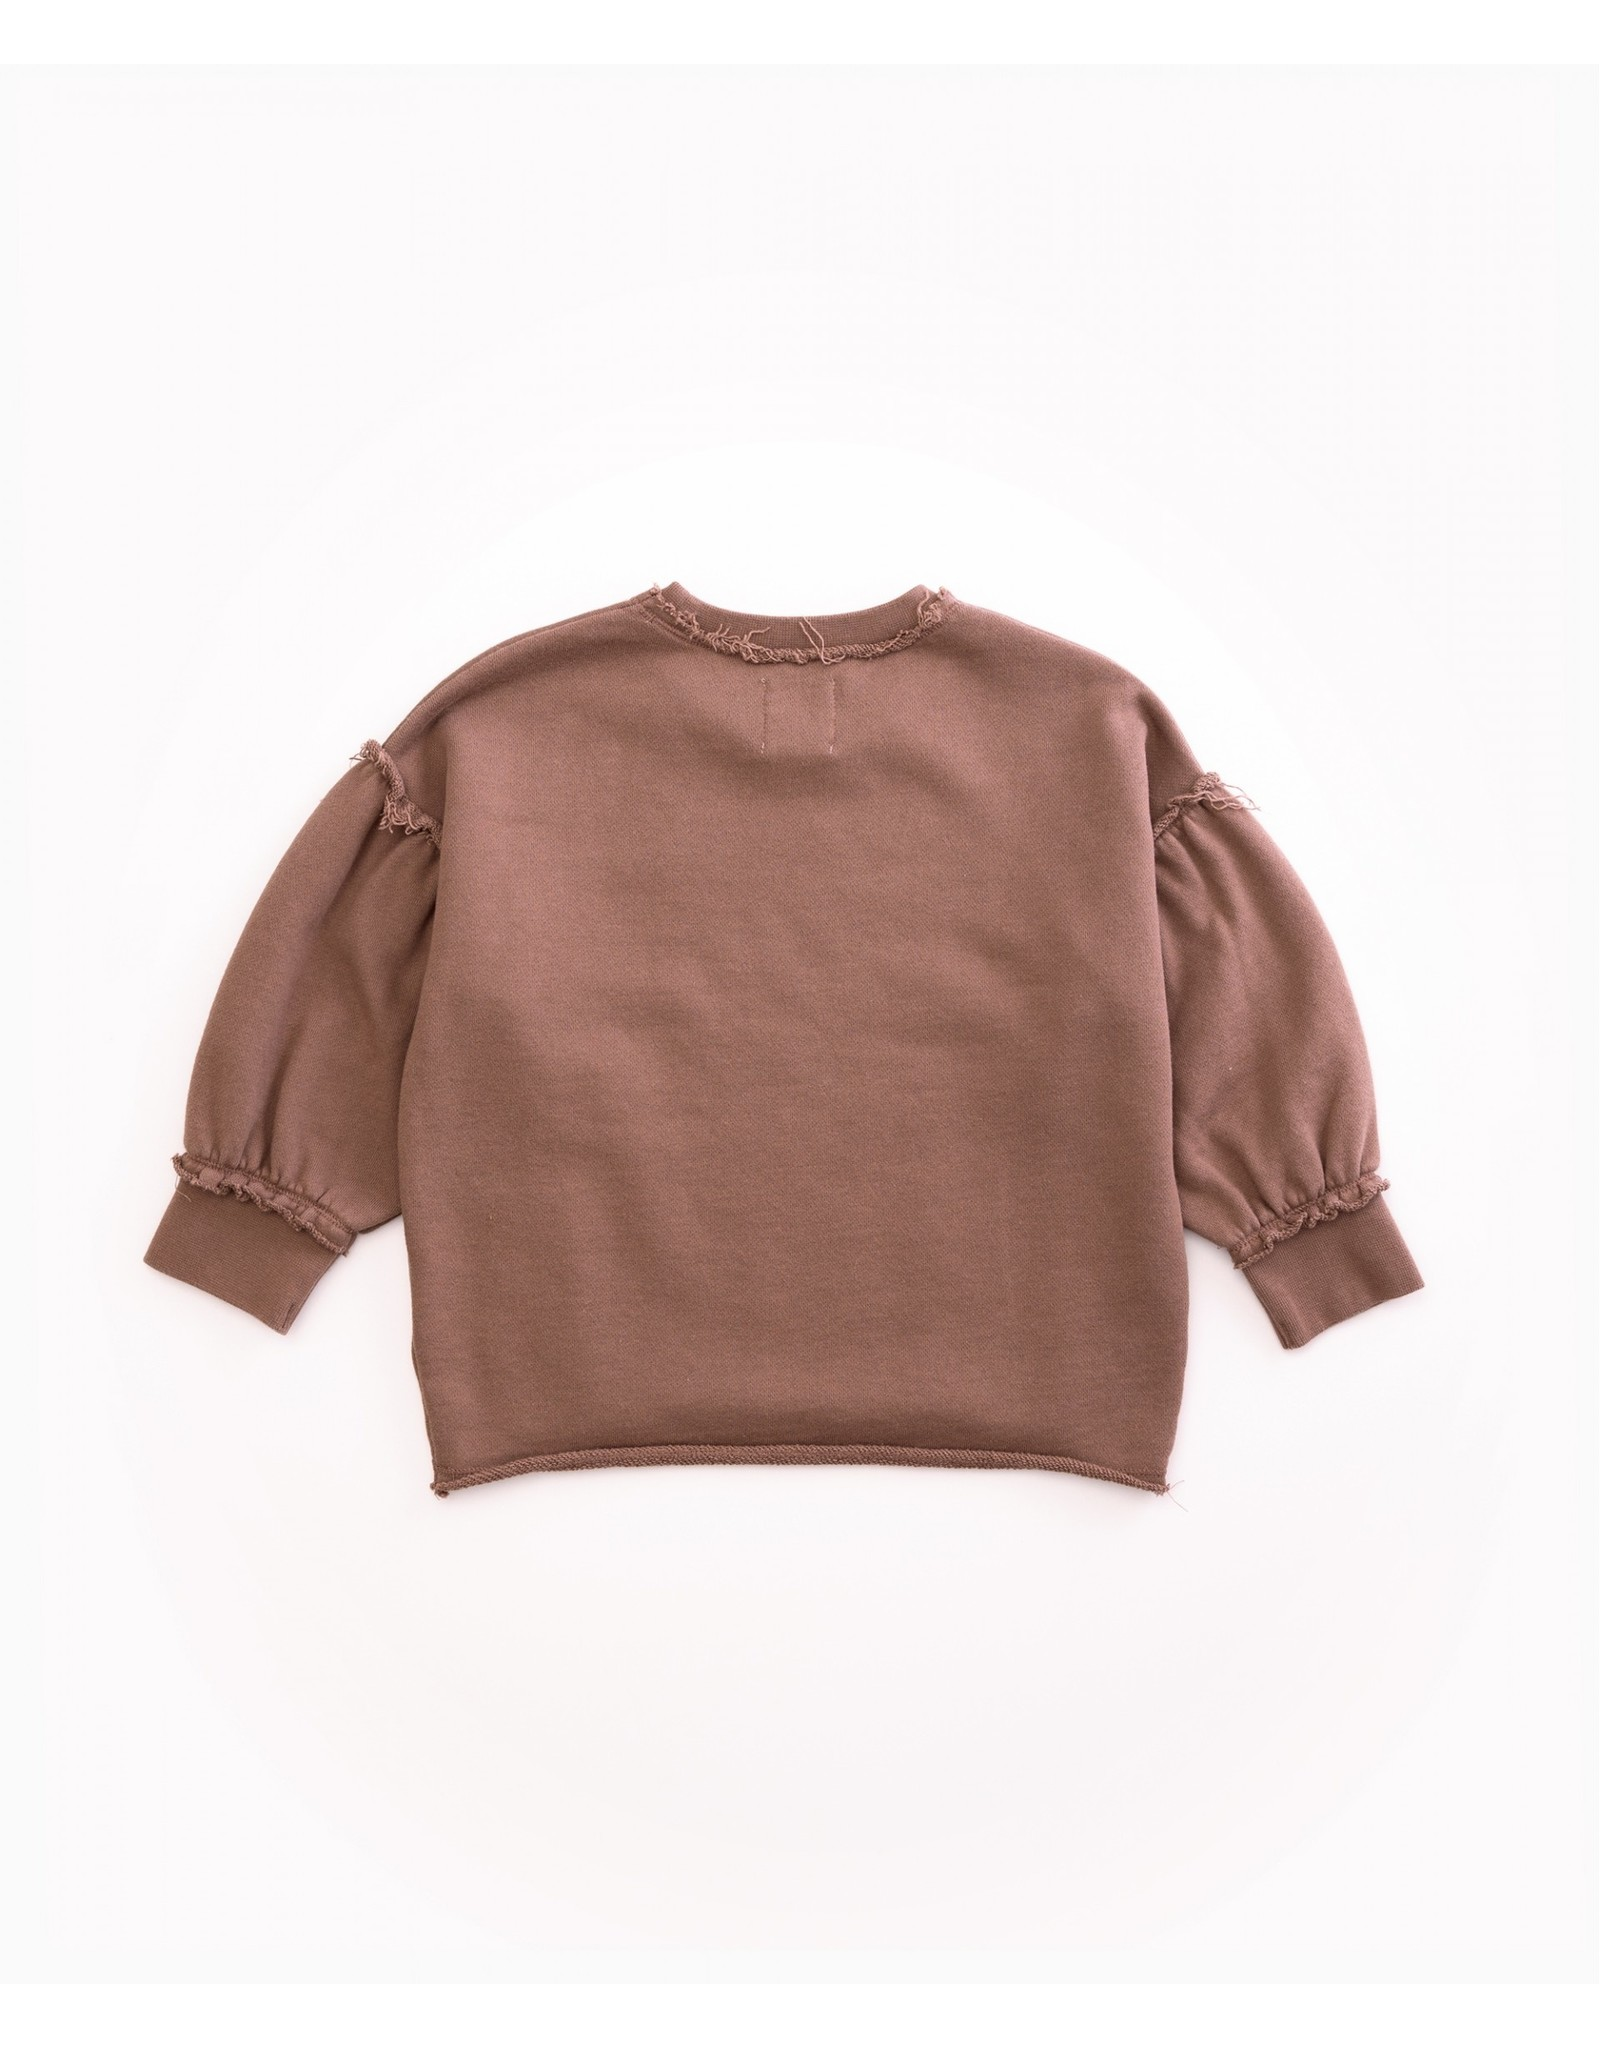 Play Up Play Up Sweater Jersey in Organic with Cuffs Purplewood